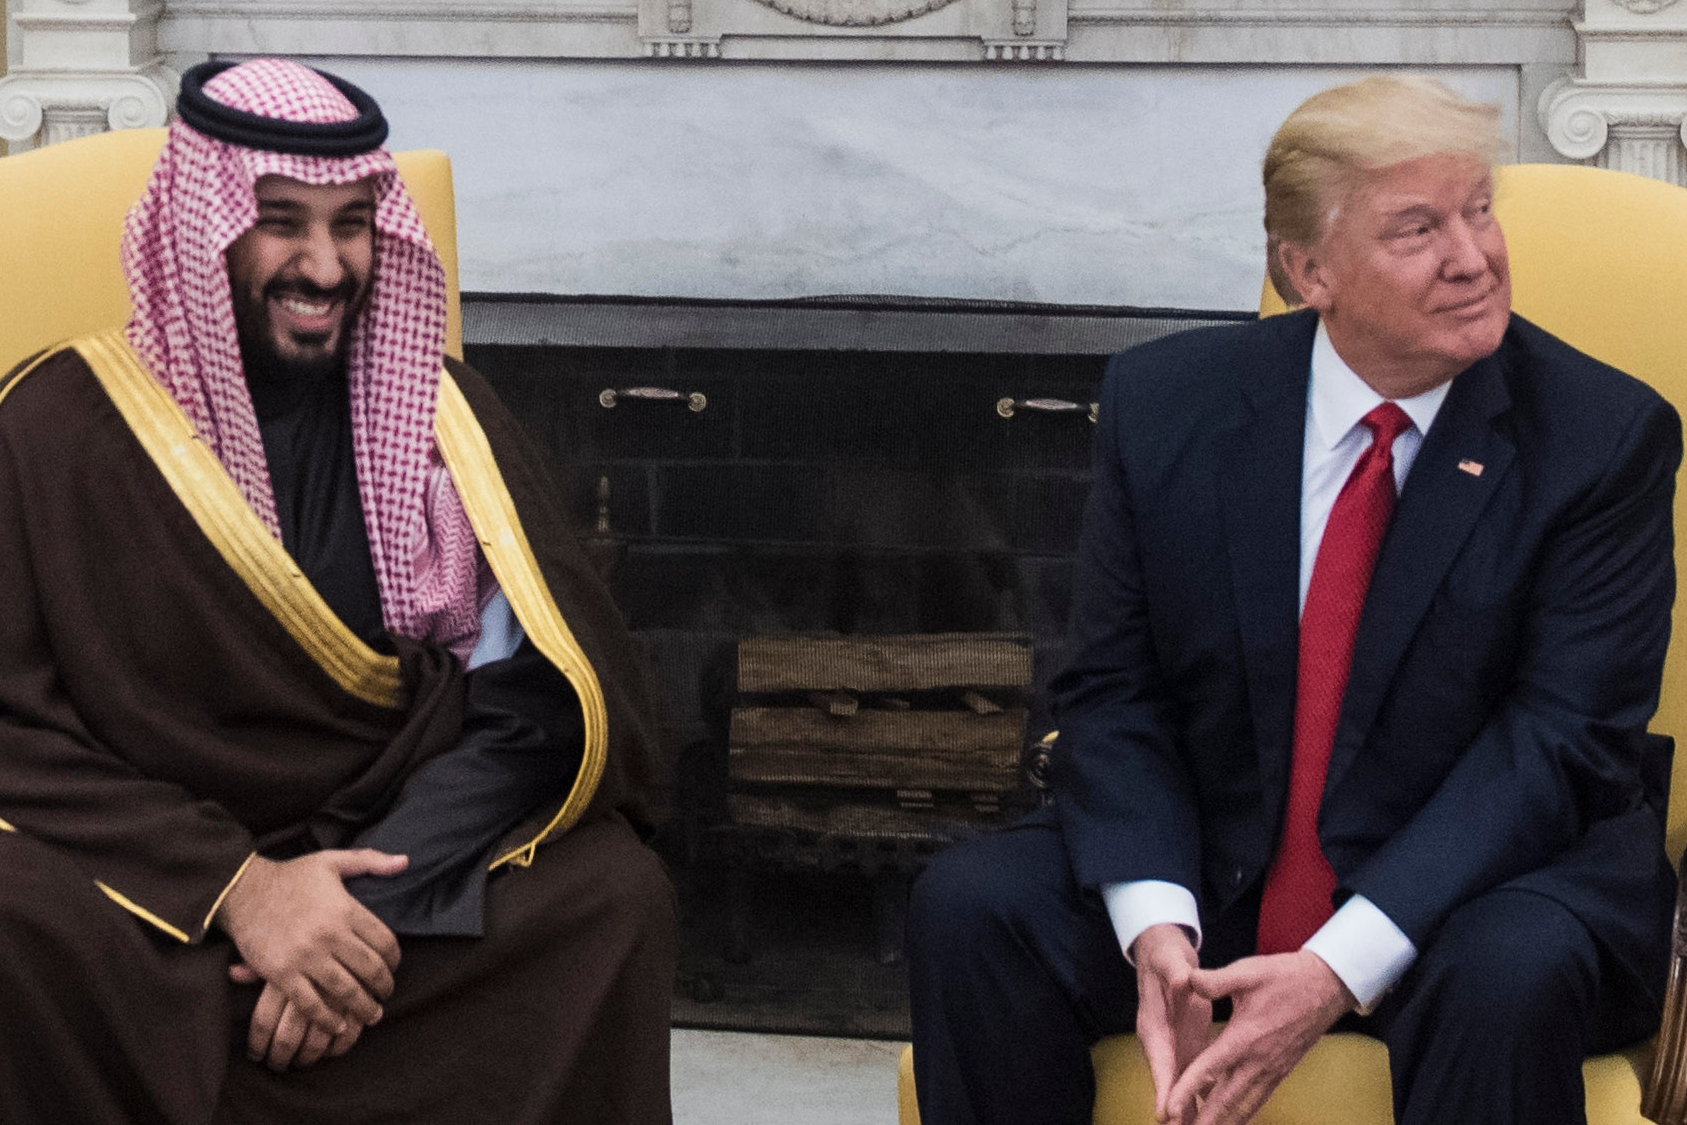 President Trump with Saudi crown prince Mohammed bin Salman in the Oval Office on March 14, 2017. (Jabin Botsford/The Washington Post)